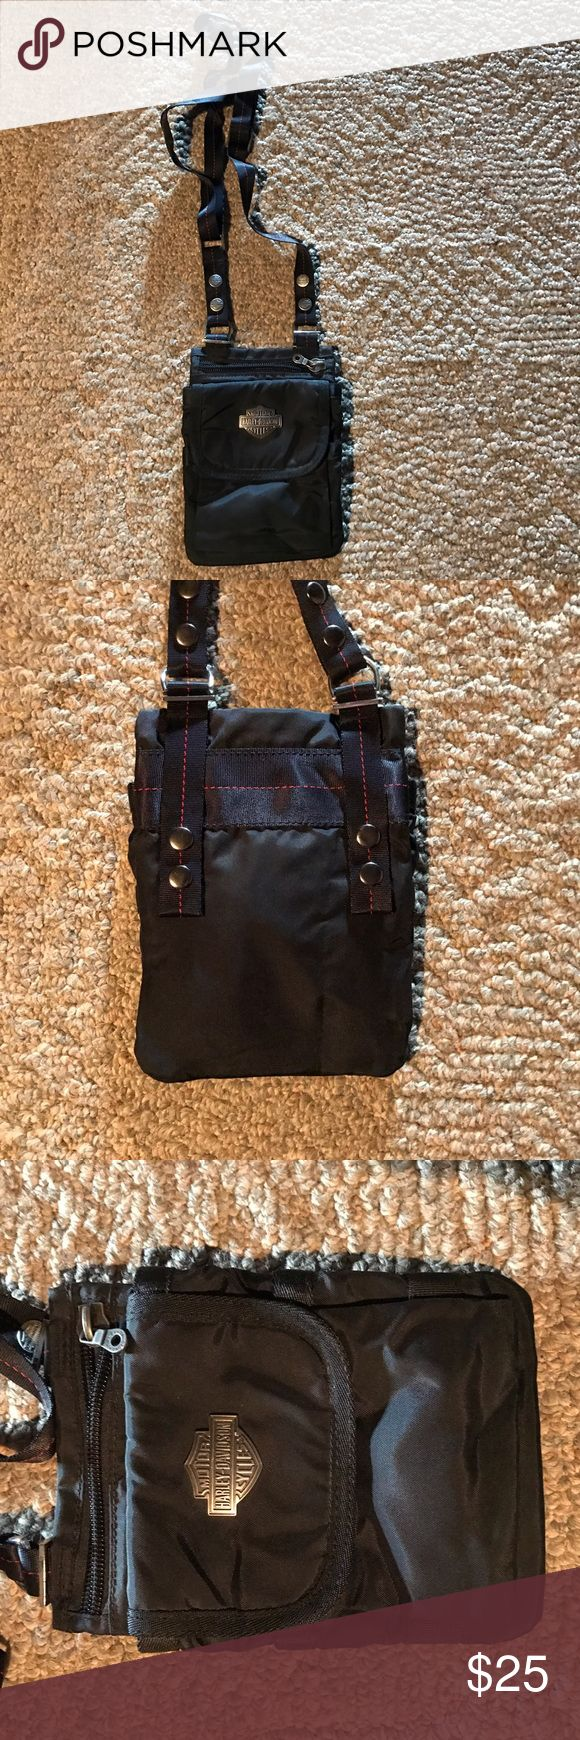 Harley Davidson purse Never used. Harley Davidson cross body purse Harley-Davidson Bags Crossbody Bags